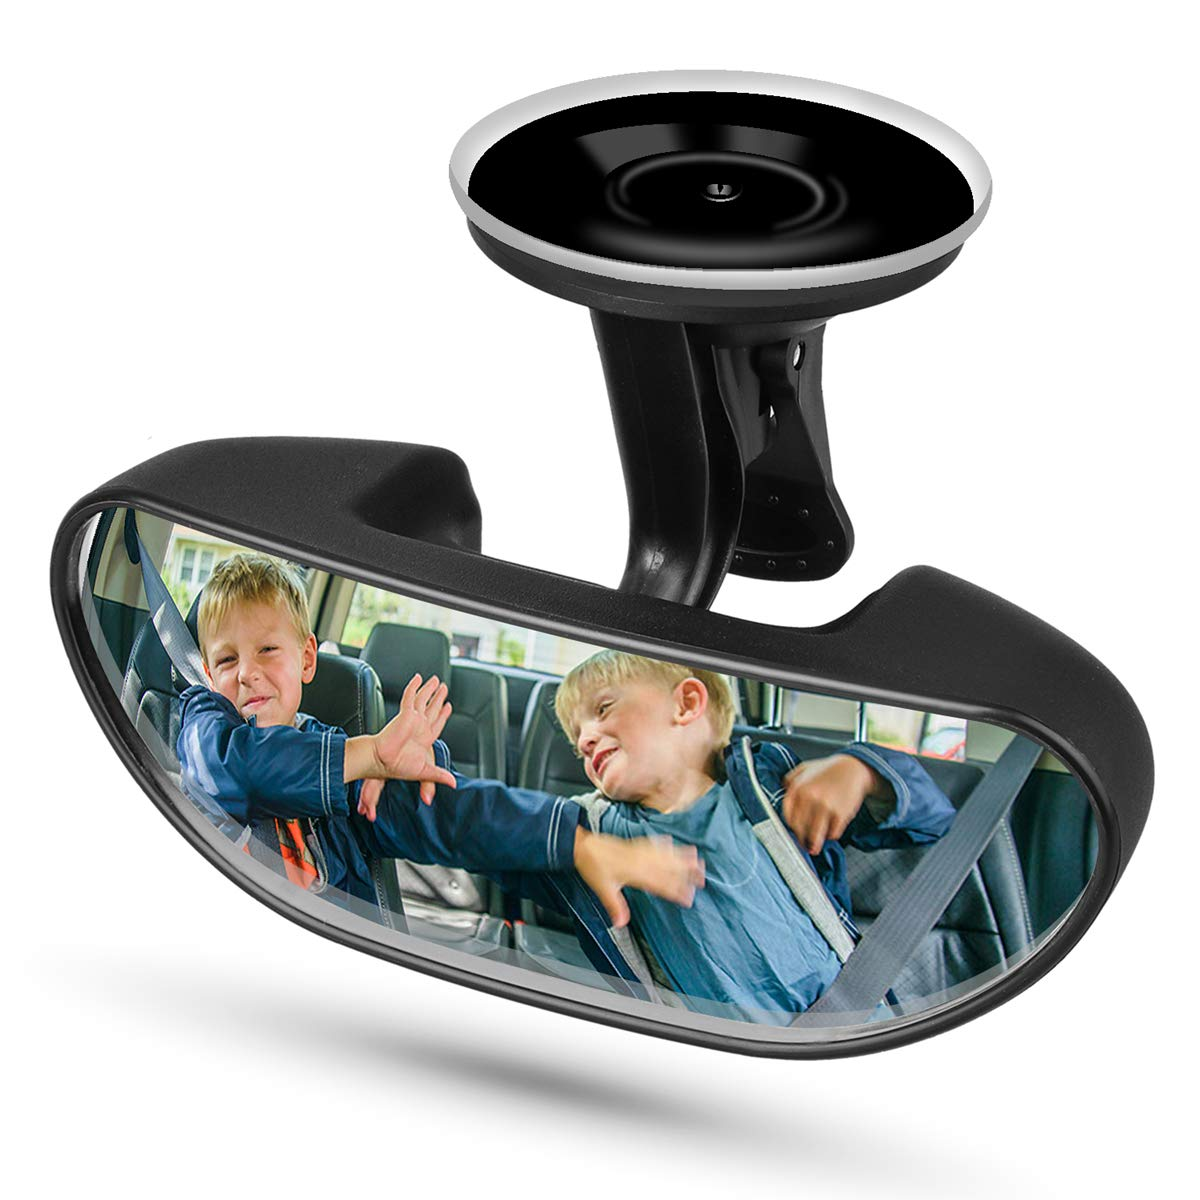 Adjustable Forward Baby Mirror with 360 Degree Adjustable Strengthen Suction Cup Backseat Mirror Baby Car Rearview Mirror Universal Car Rear View Mirror